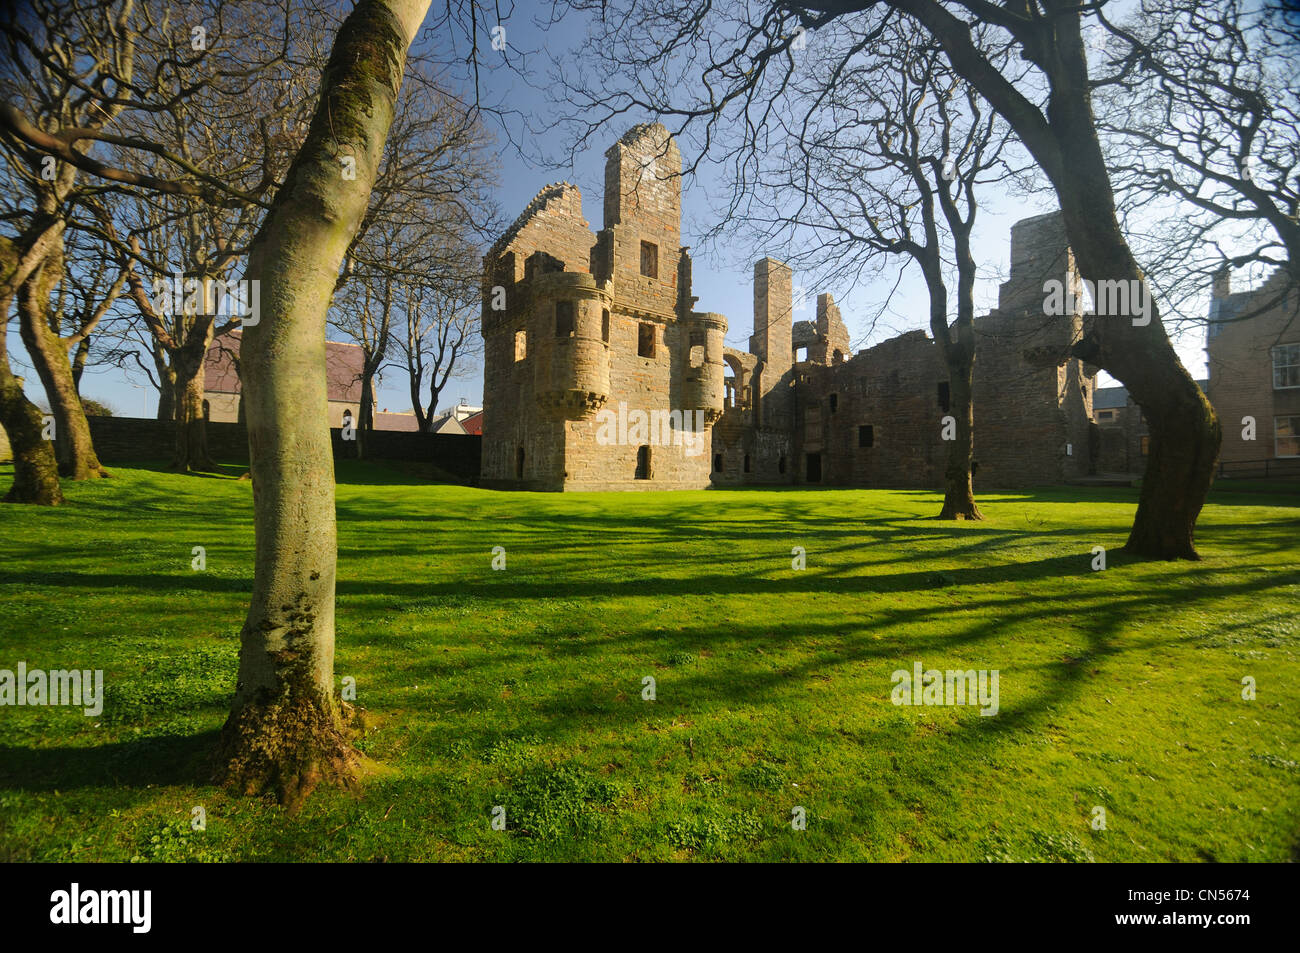 The Earl's Palace, Kirkwall, Orkney - Stock Image